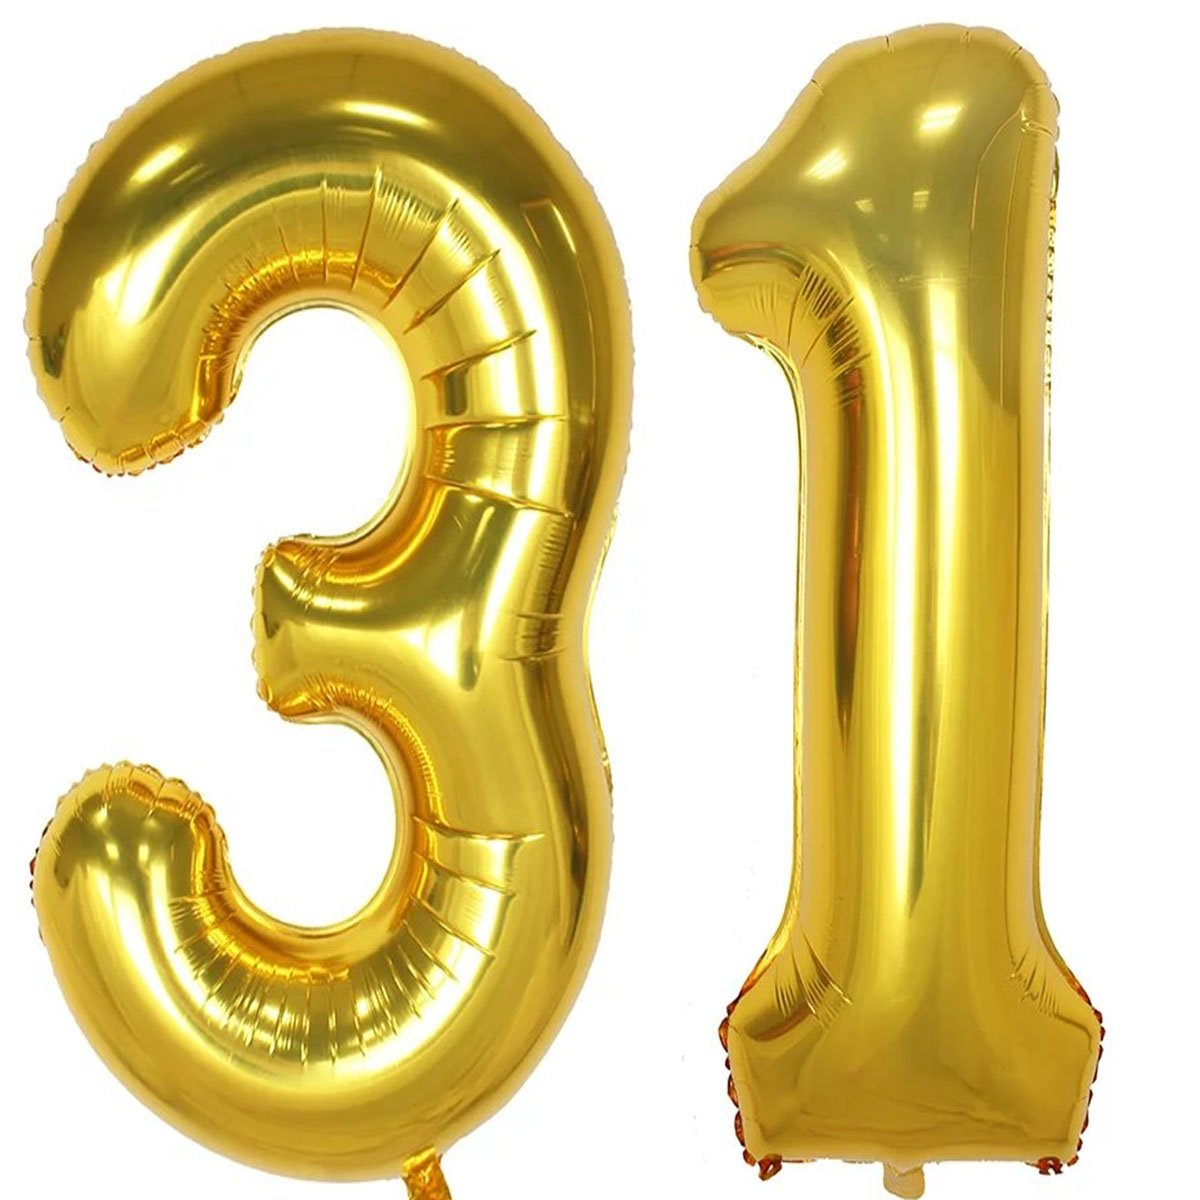 40inch Gold Foil 31 Helium Jumbo Digital Number Balloons 31th Birthday Decoration For Girls Or